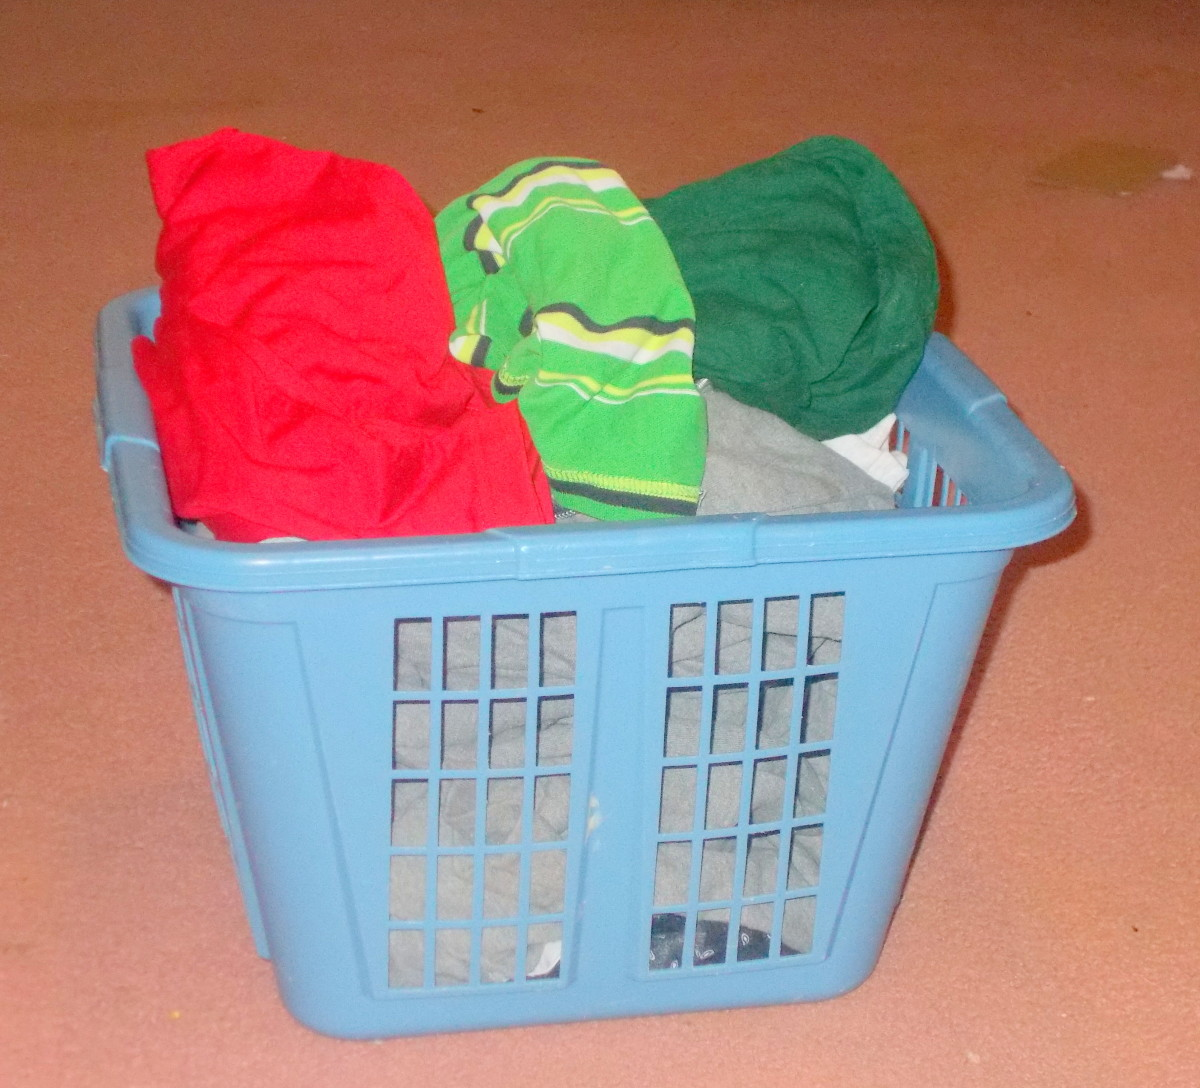 6 Steps to Help People With Vision Loss Do Laundry